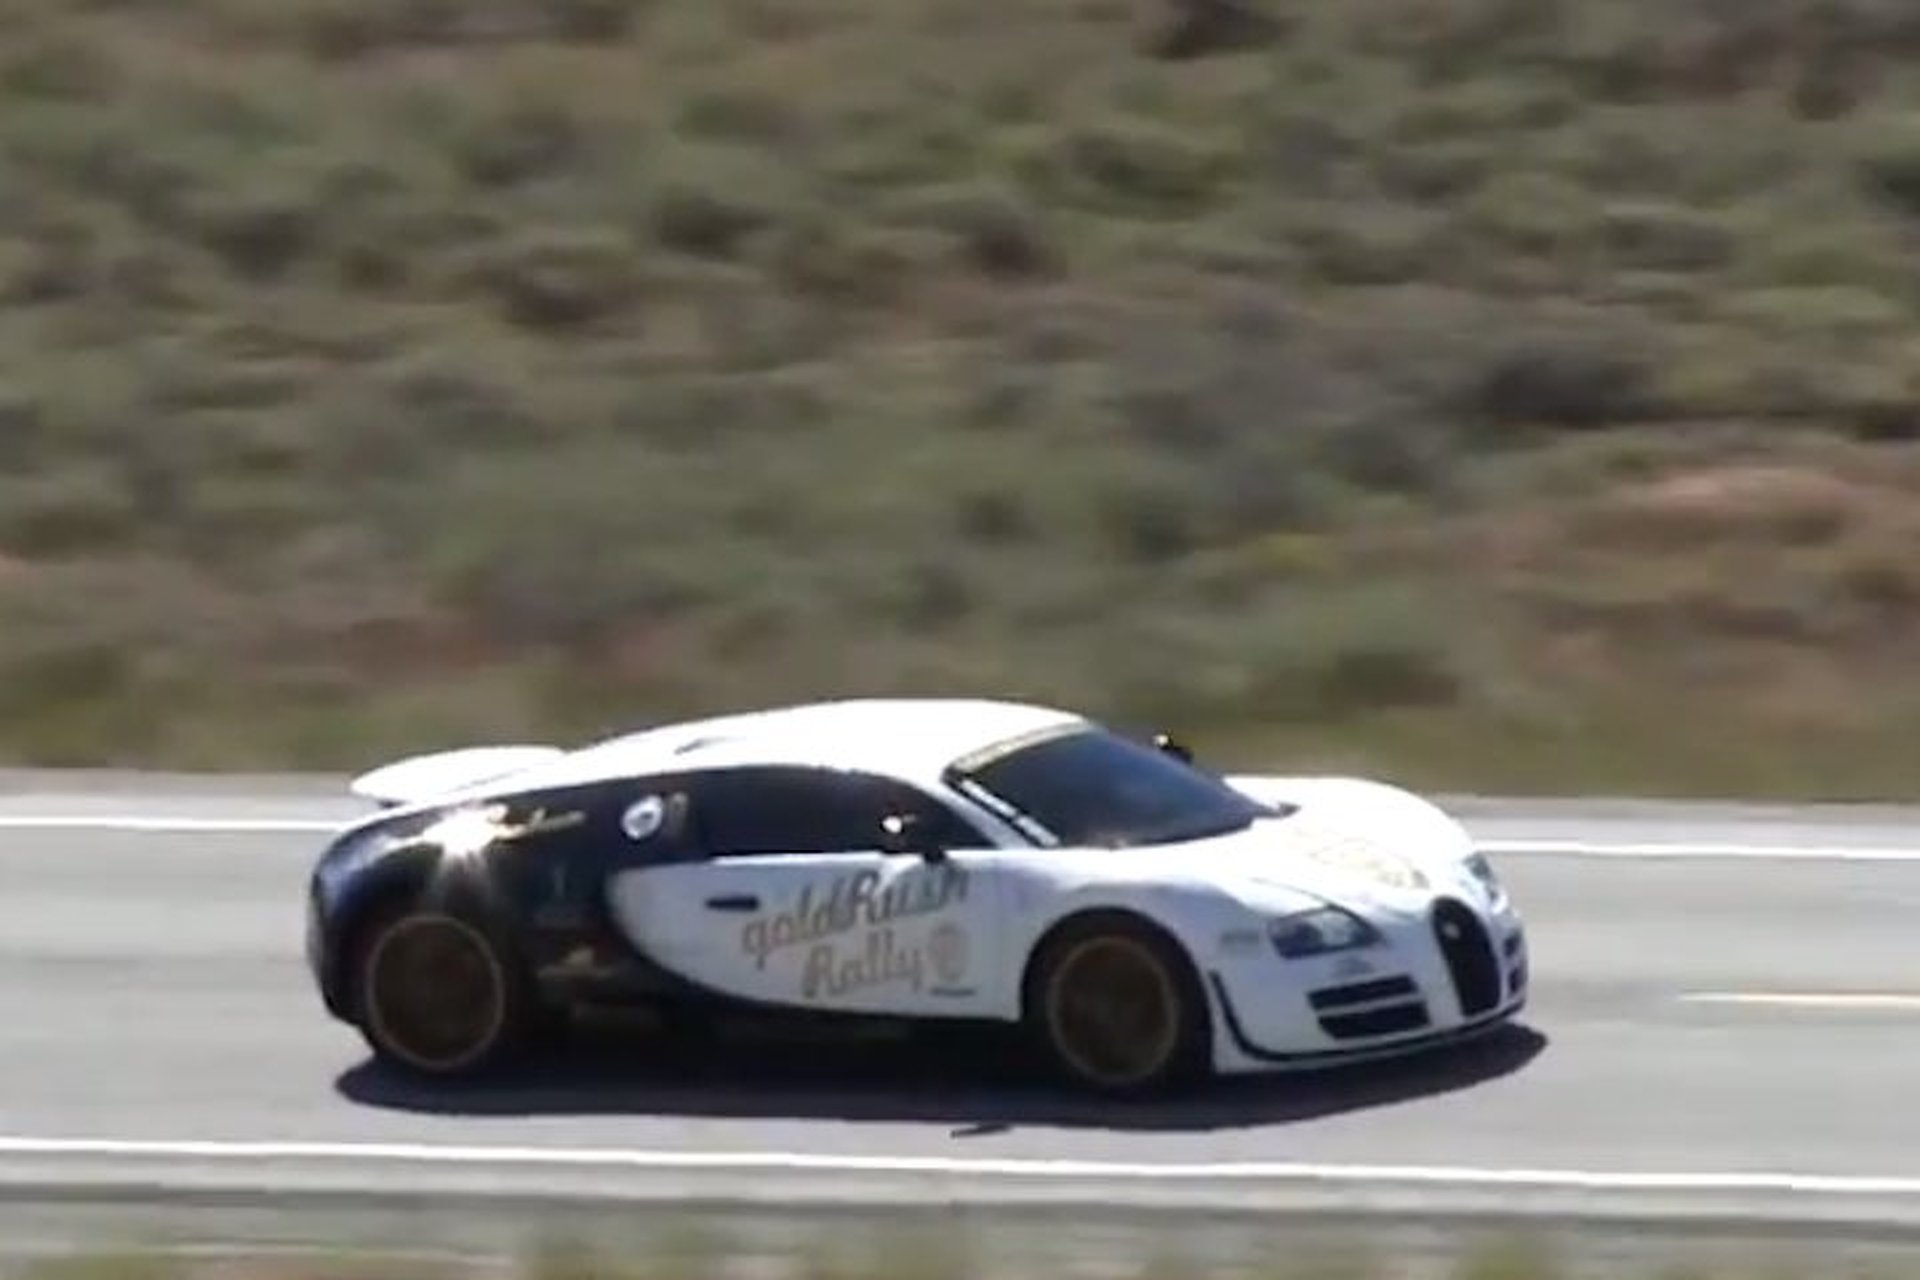 bugatti-veyron-ss-hits-2464-mph-on-open-road-in-idaho-video Wonderful Bugatti Veyron On Road Price Cars Trend